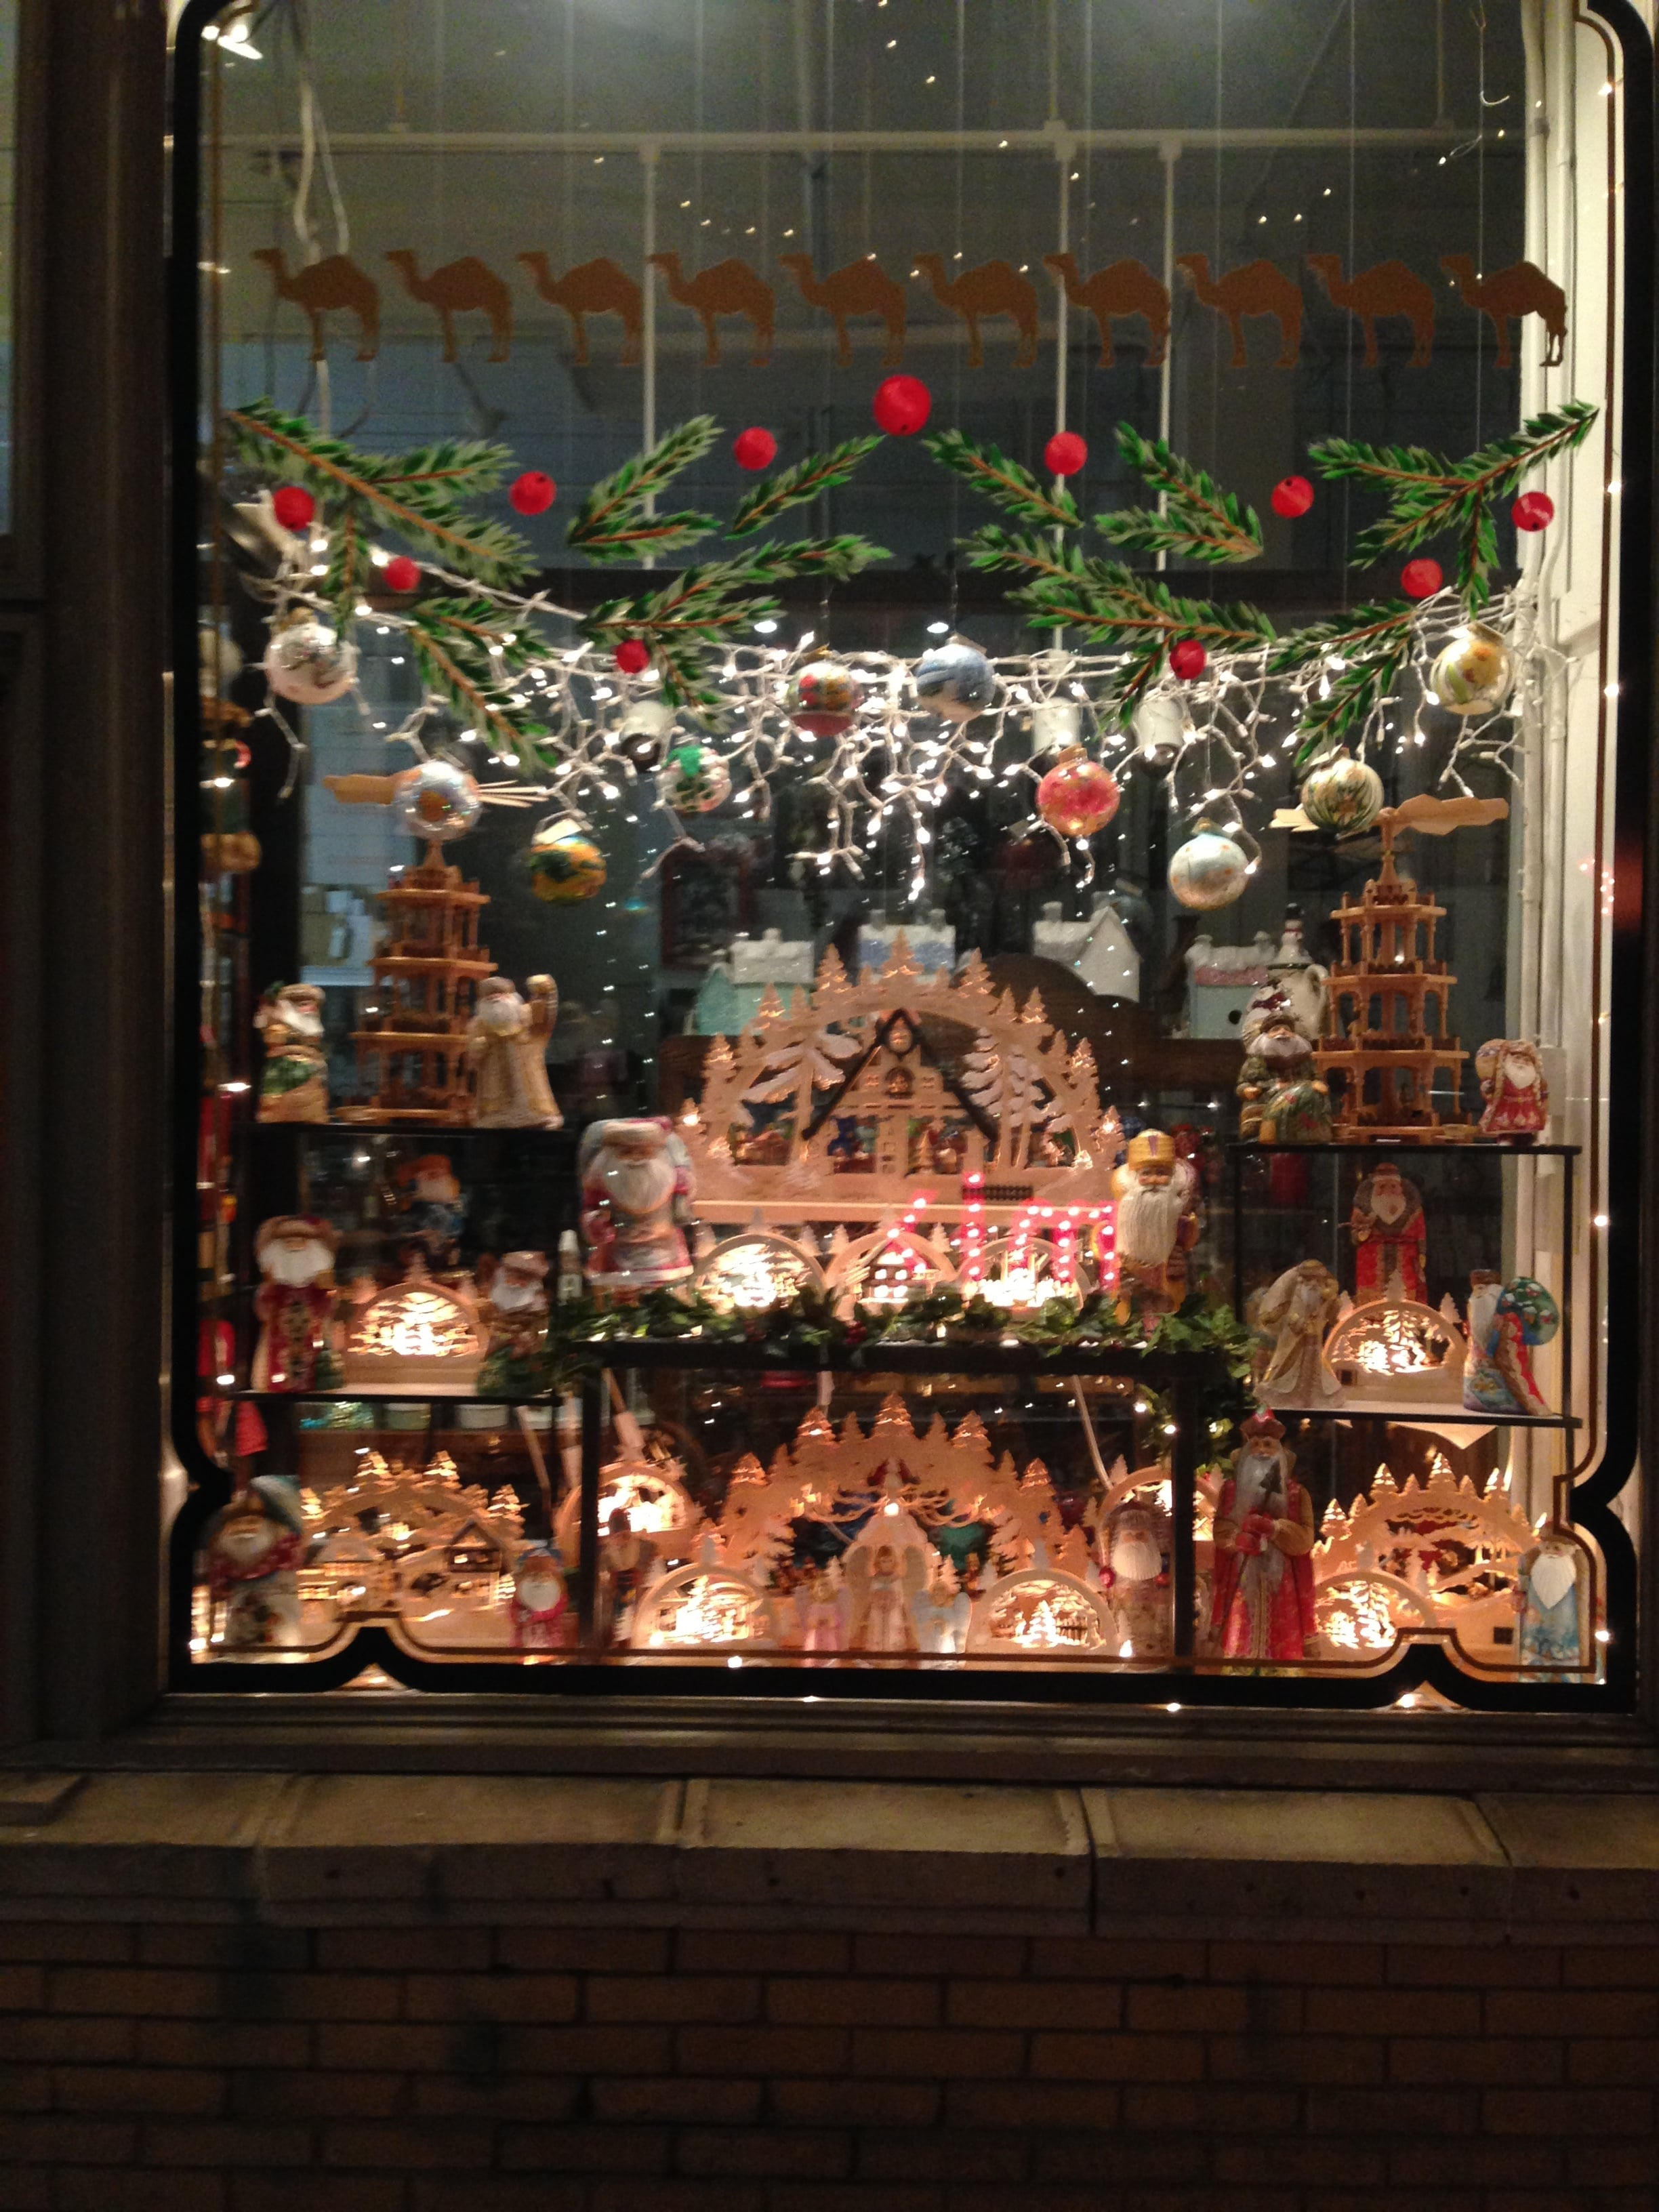 The Caravan Shop window display over the holidays.